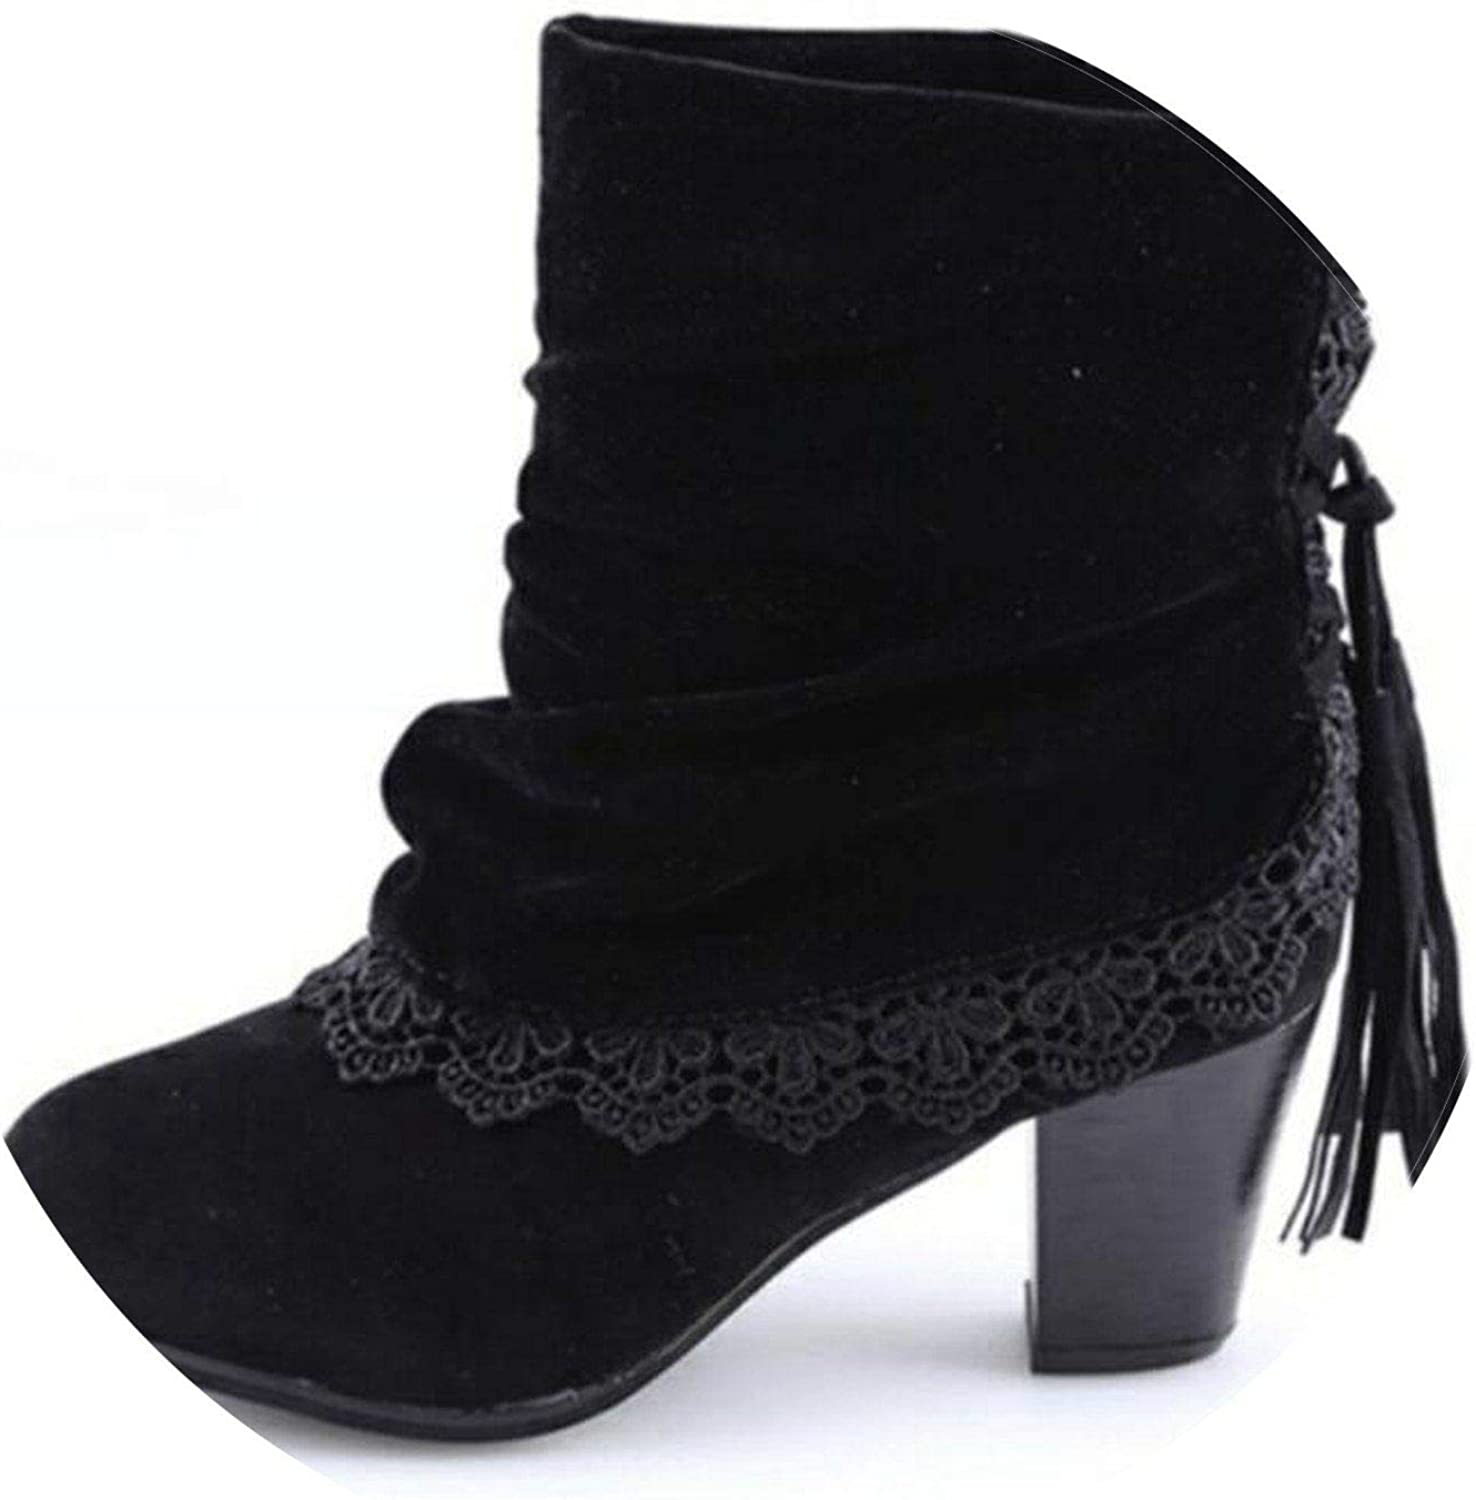 Autumn Winter Women Boots Casual Martin Boots Suede Round Head Ankle Boots High Heeled Tassel Lace